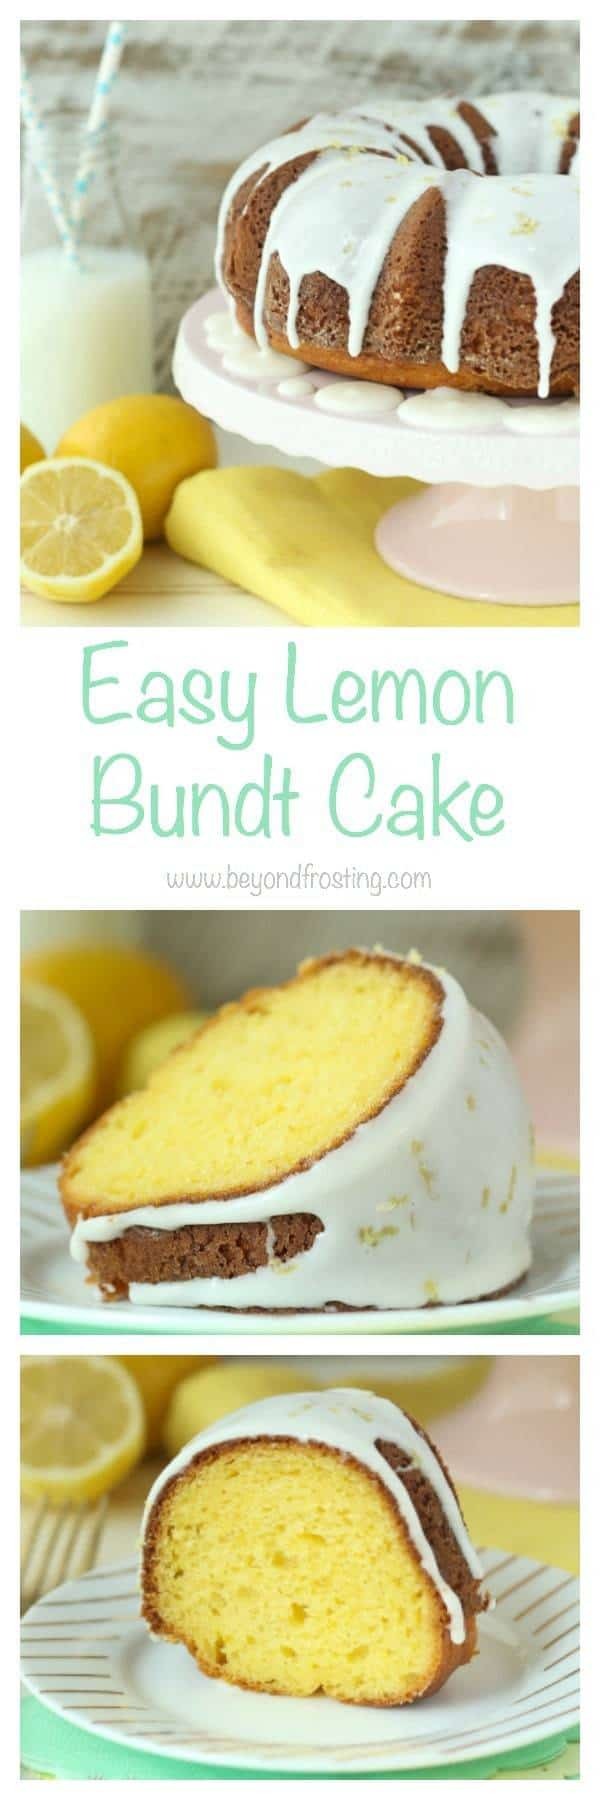 This is the easiest Lemon Bundt Cake you'll ever make and it's absolutely amazing. Perfect for dessert or even breakfast. It's covered with a lemon zested glaze.